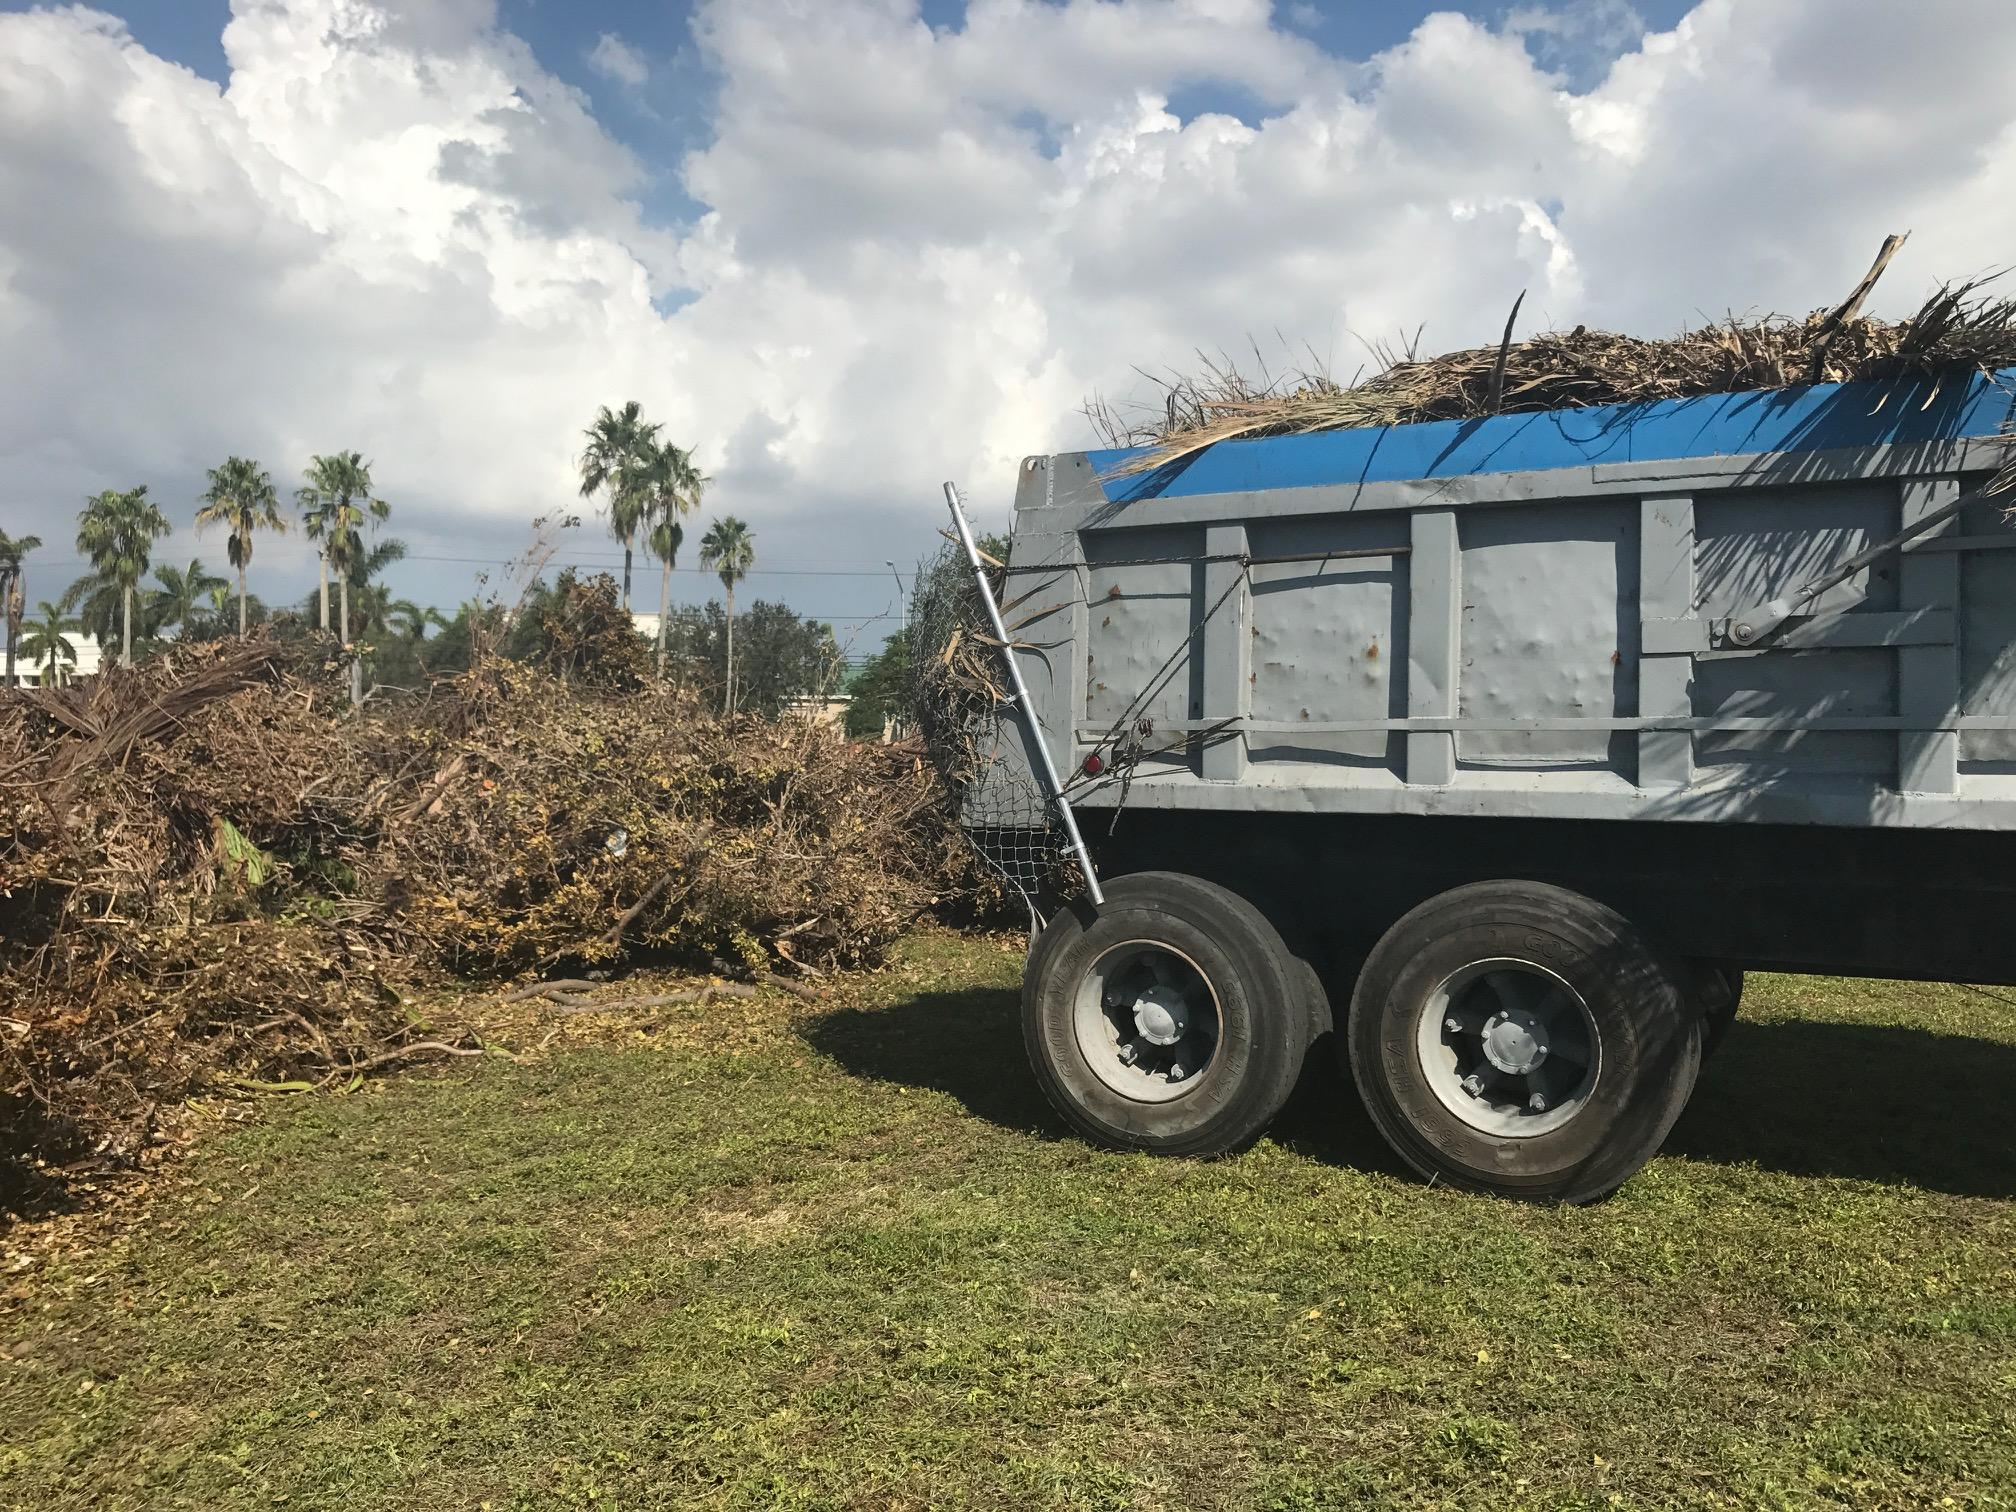 Where's All The Debris From Hurricane Irma Going? | WLRN